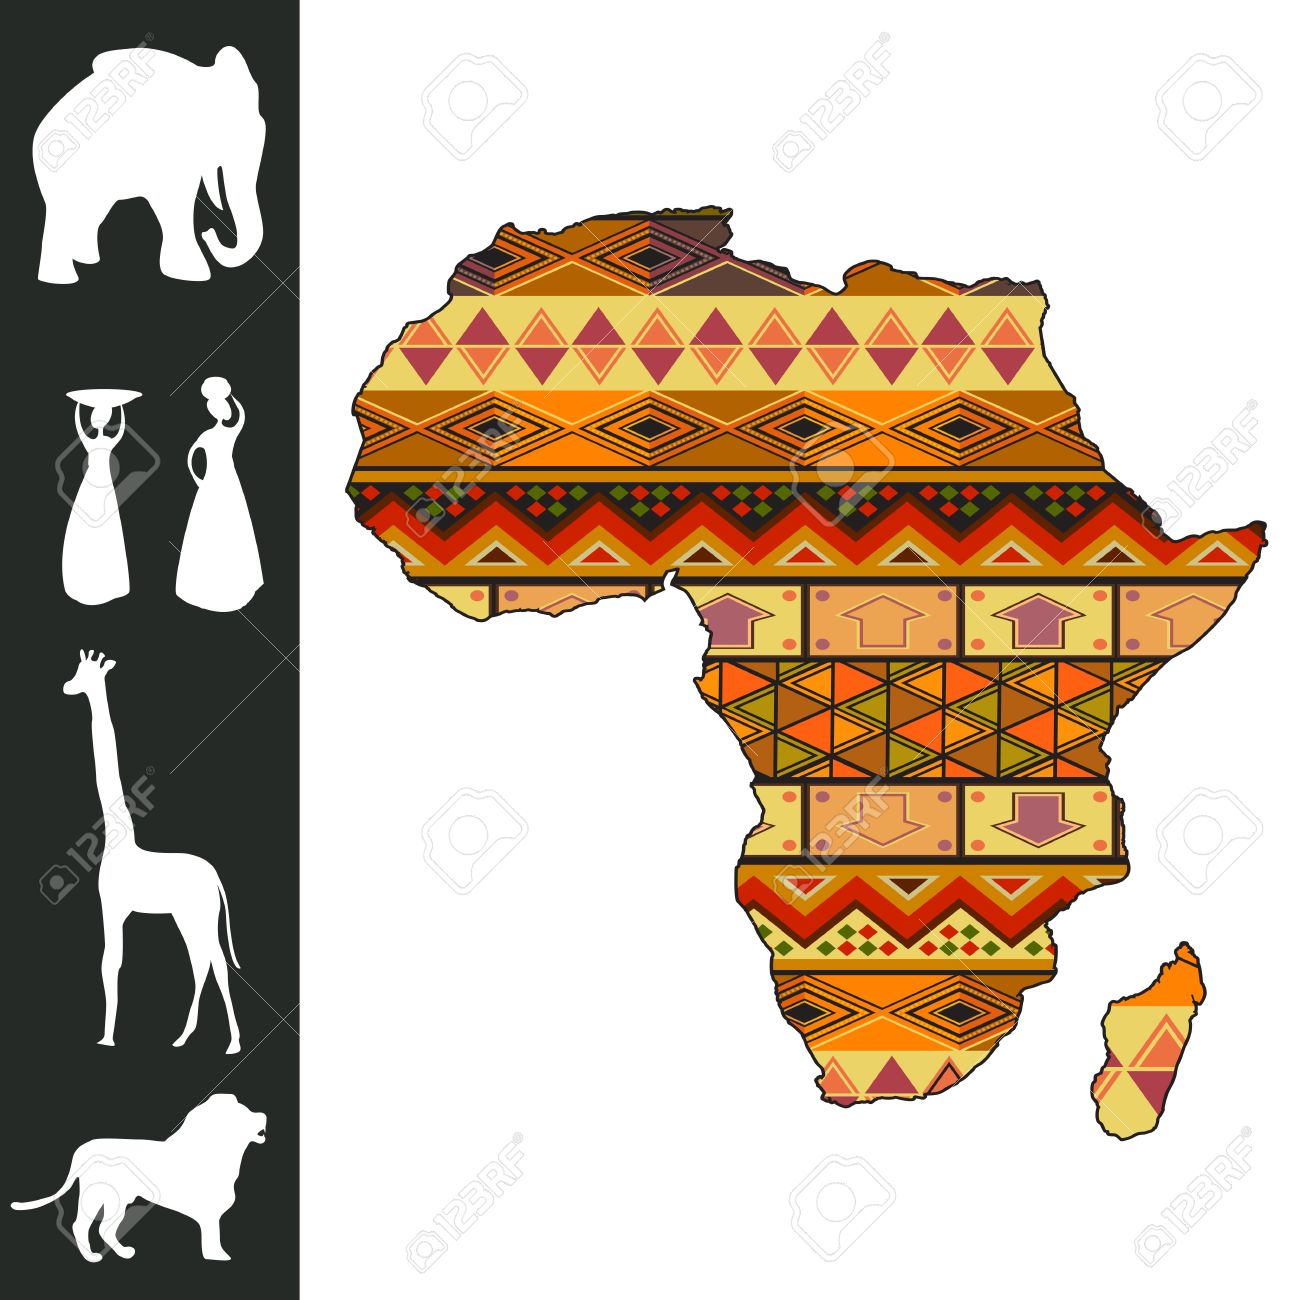 Map of Africa with decorative pattern and silhouette collection Stock Vector - 13025445